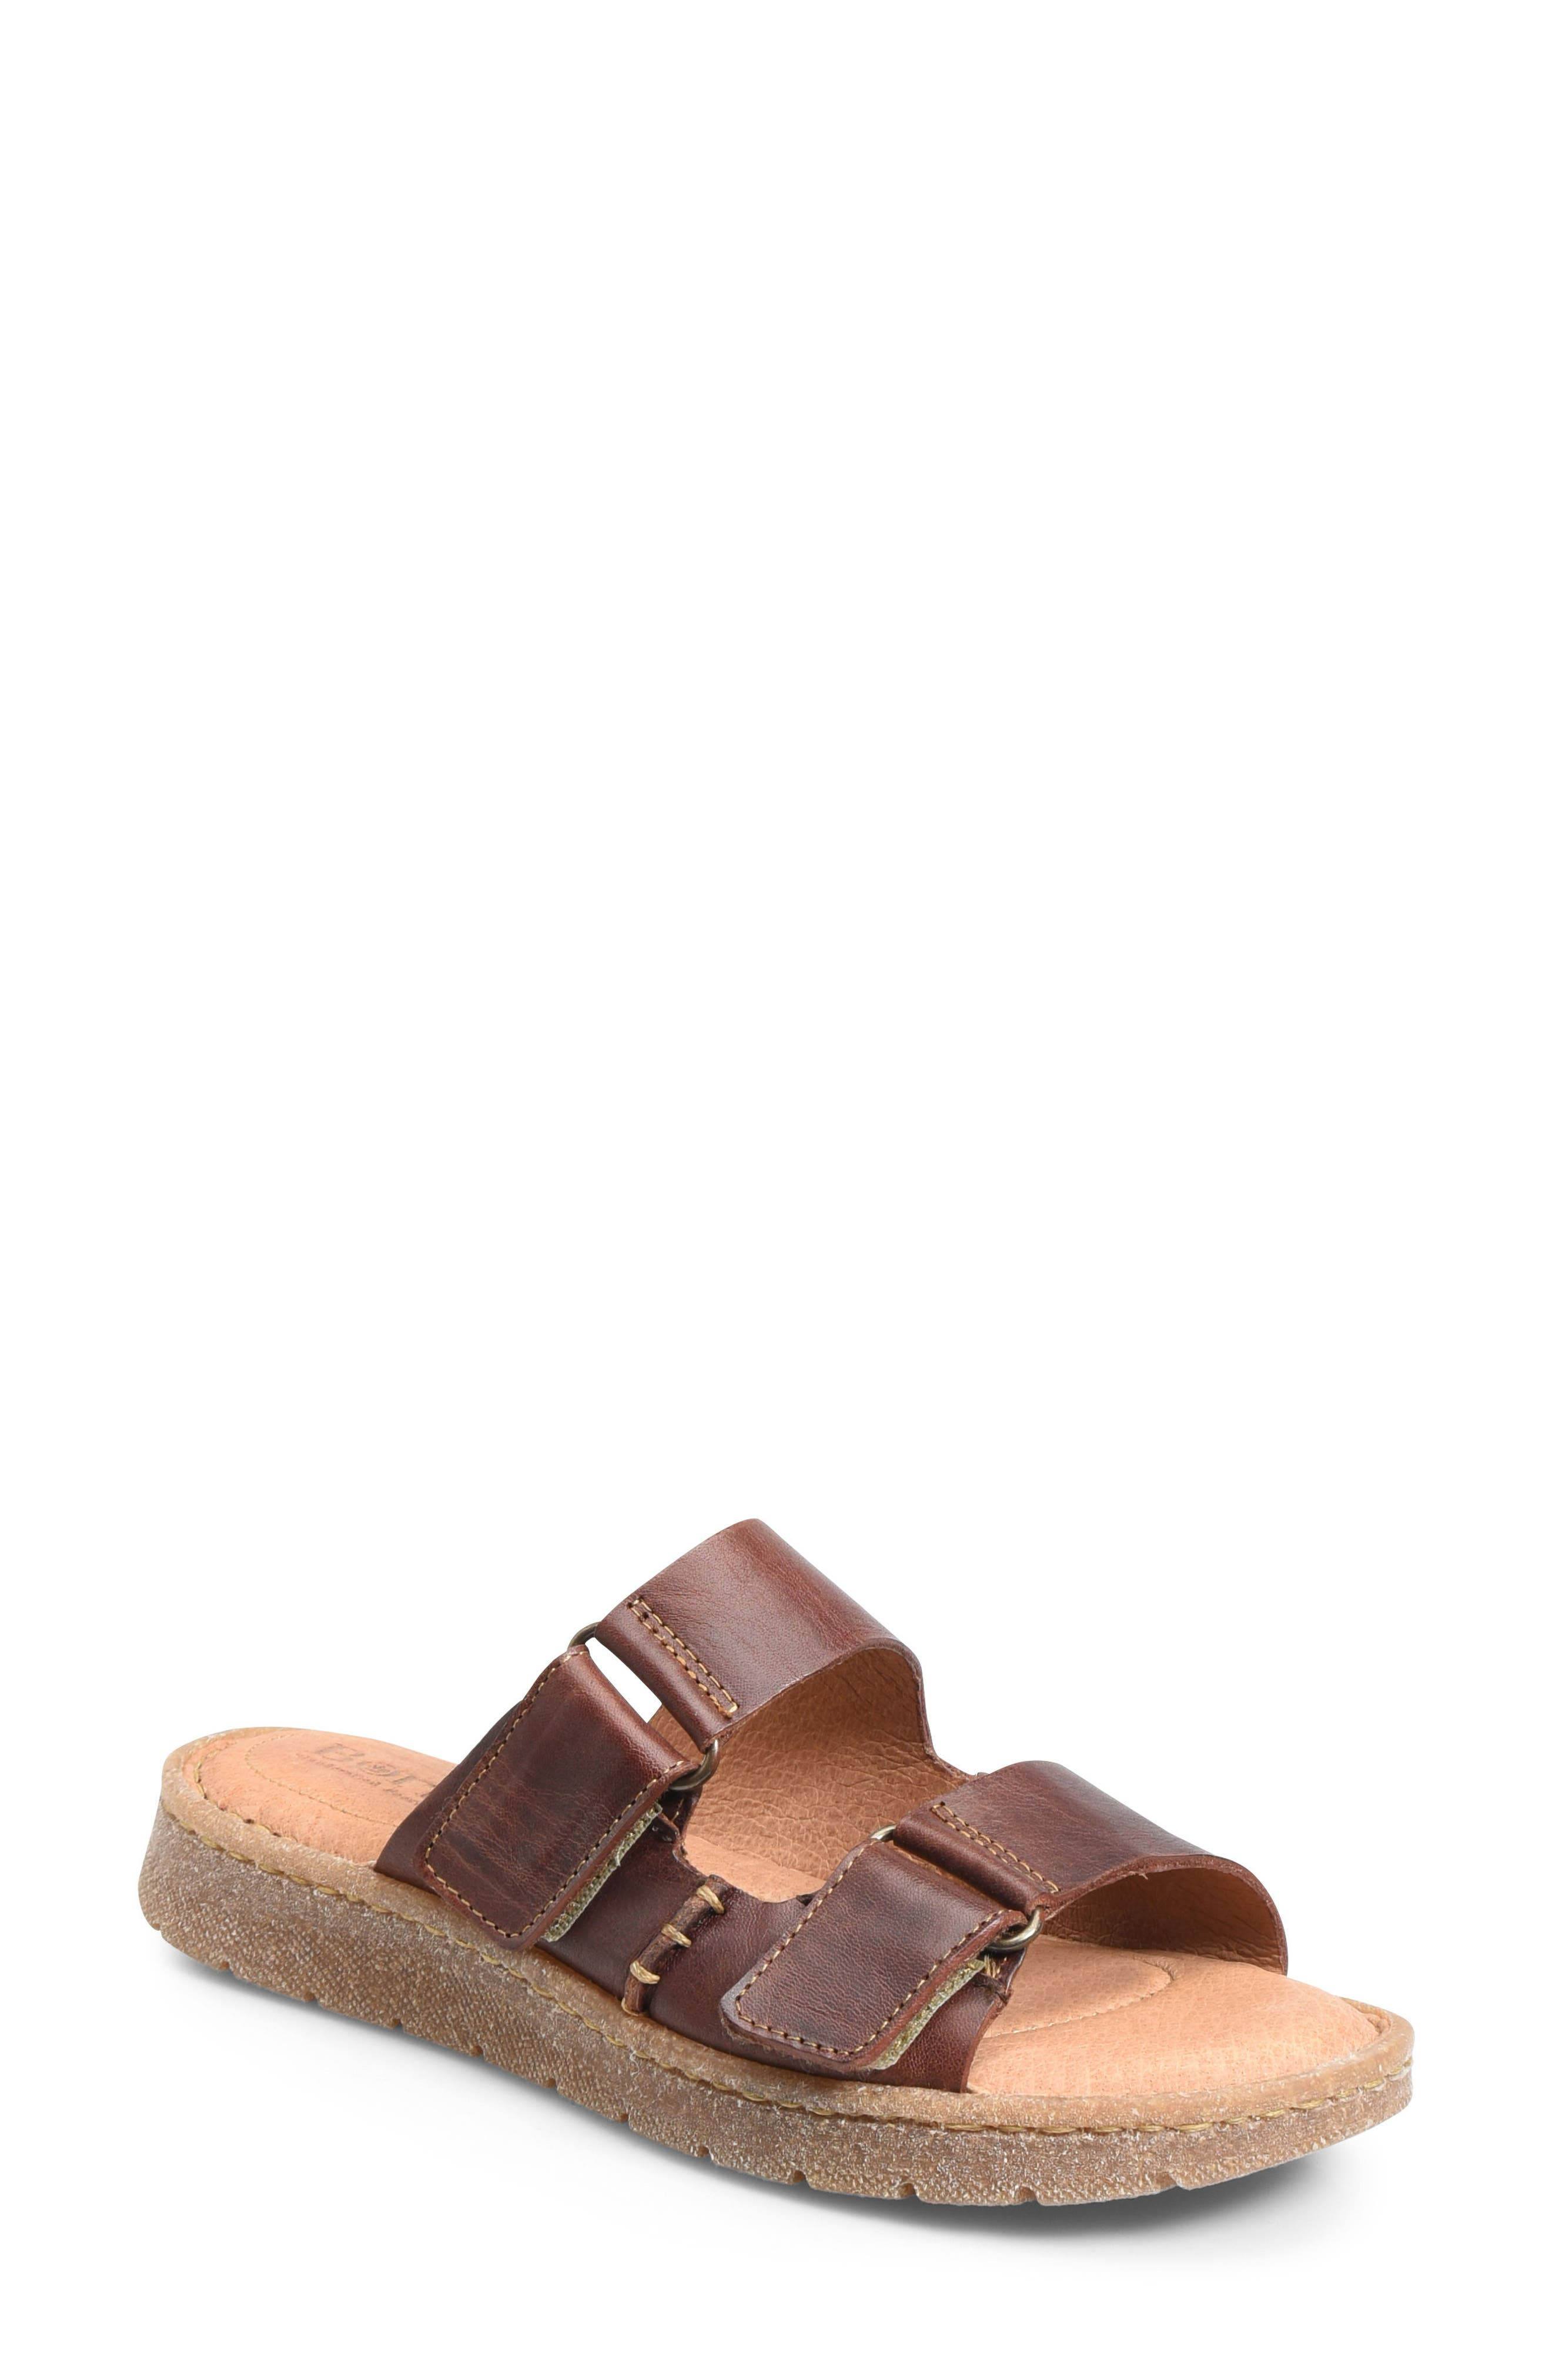 BØRN,                             Dominica Sandal,                             Main thumbnail 1, color,                             RUST LEATHER